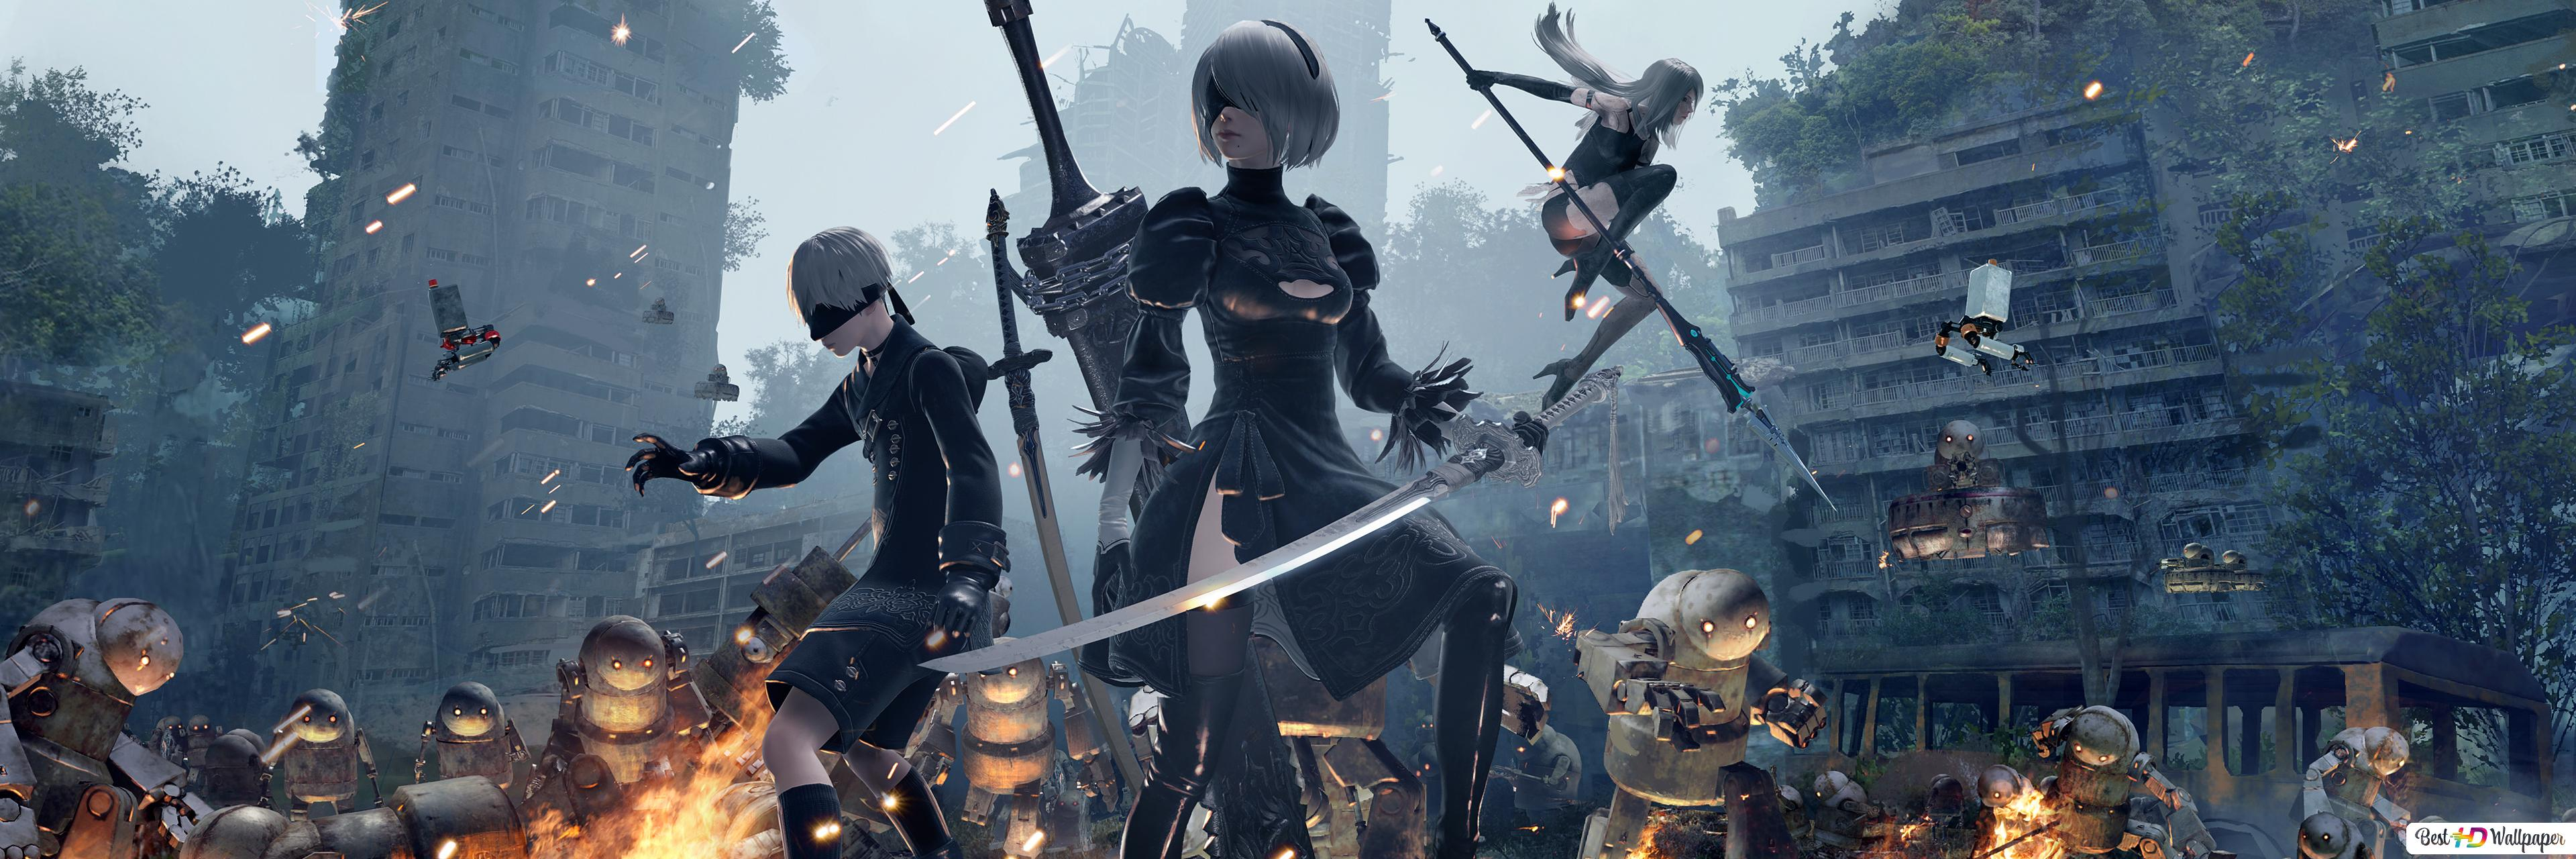 Nier Automata Video Game Yorha 9s 2b And A2 Hd Wallpaper Download